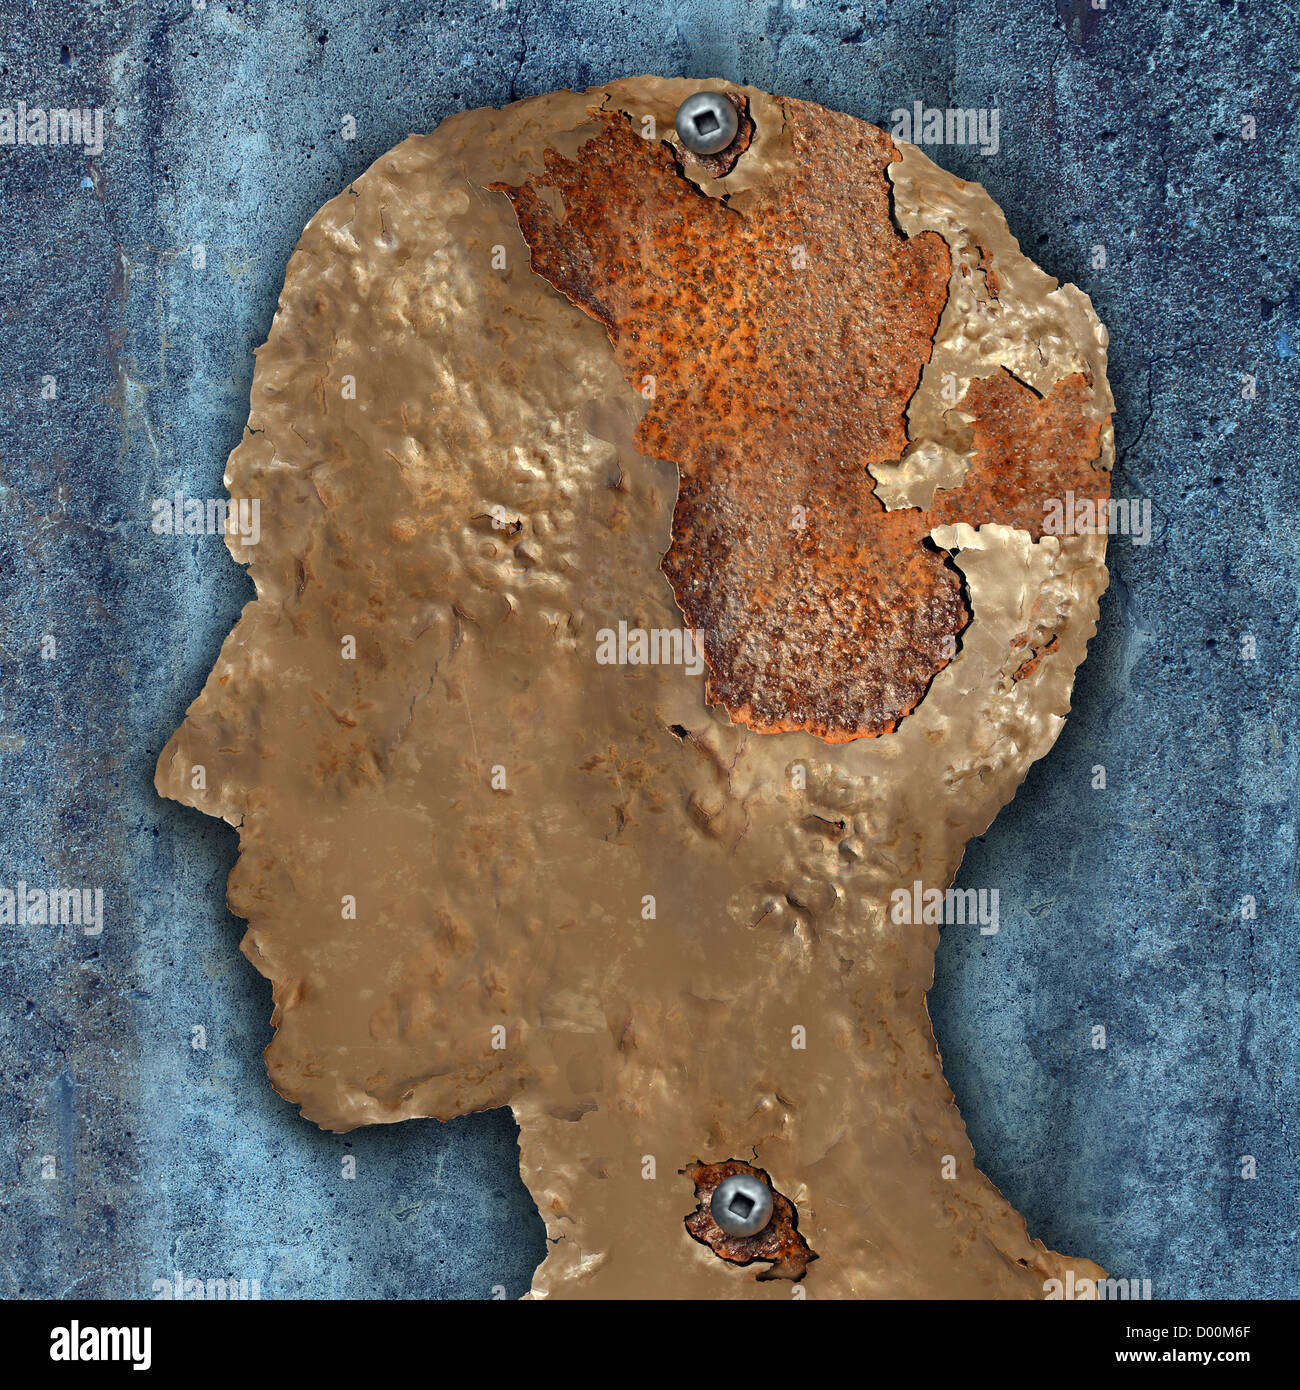 dementia and memory loss Dementia refers to a category of diseases that cause loss of memory and deterioration in other mental functions dementia occurs due to physical changes in the brain and is a progressive disease .